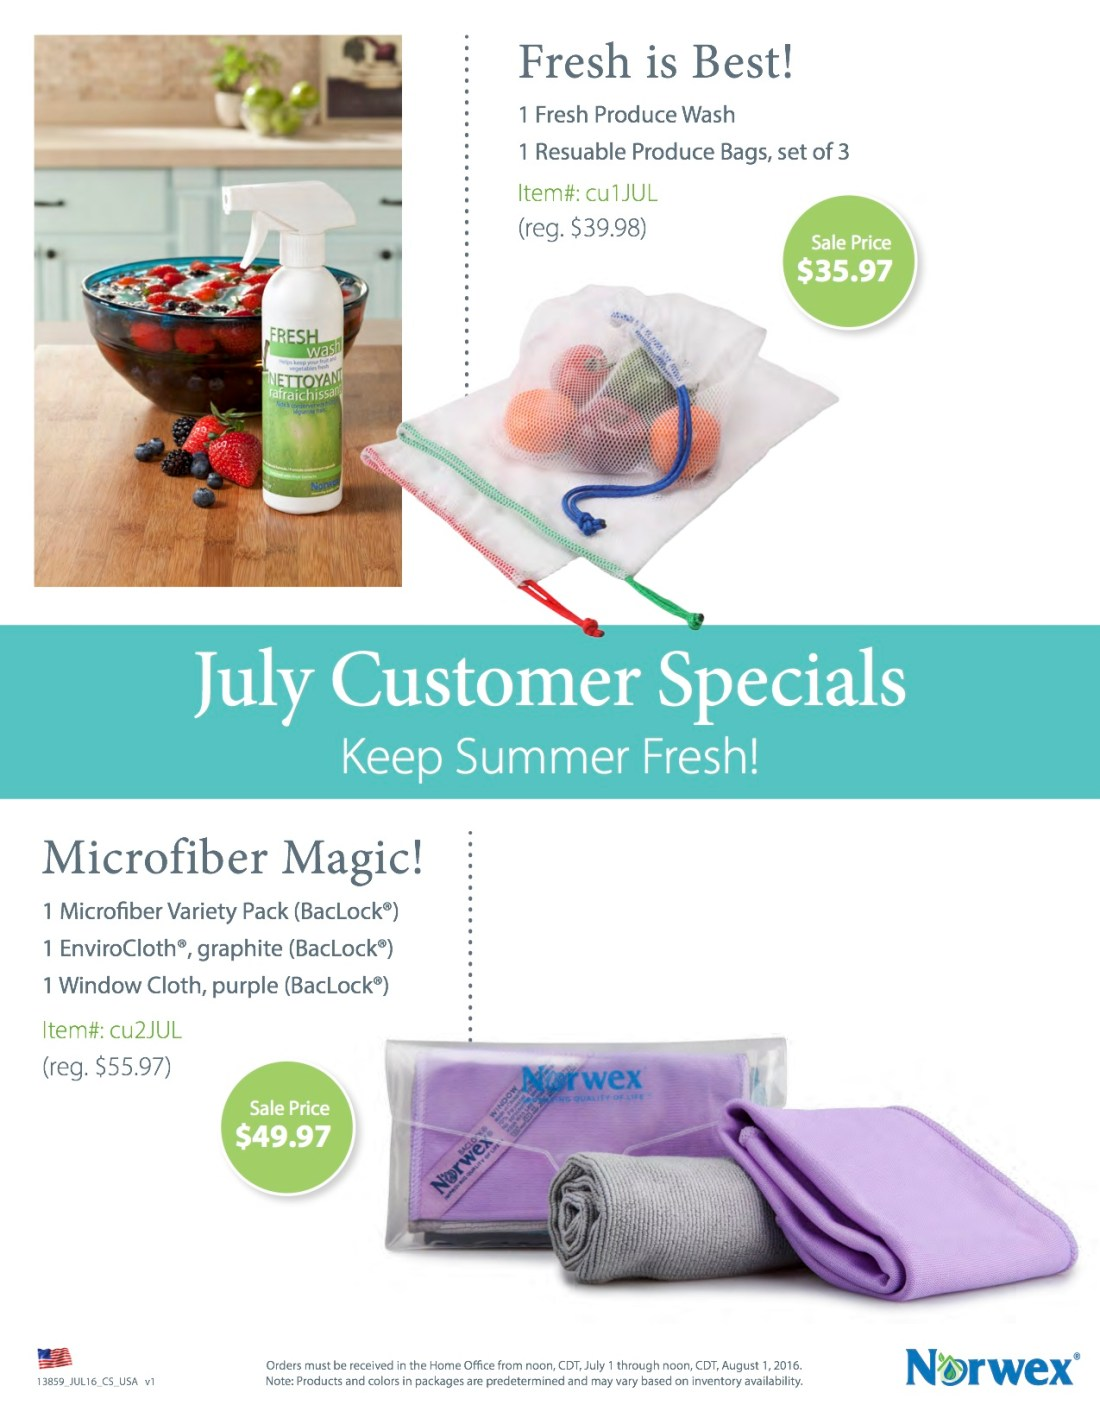 July16 Customer Special